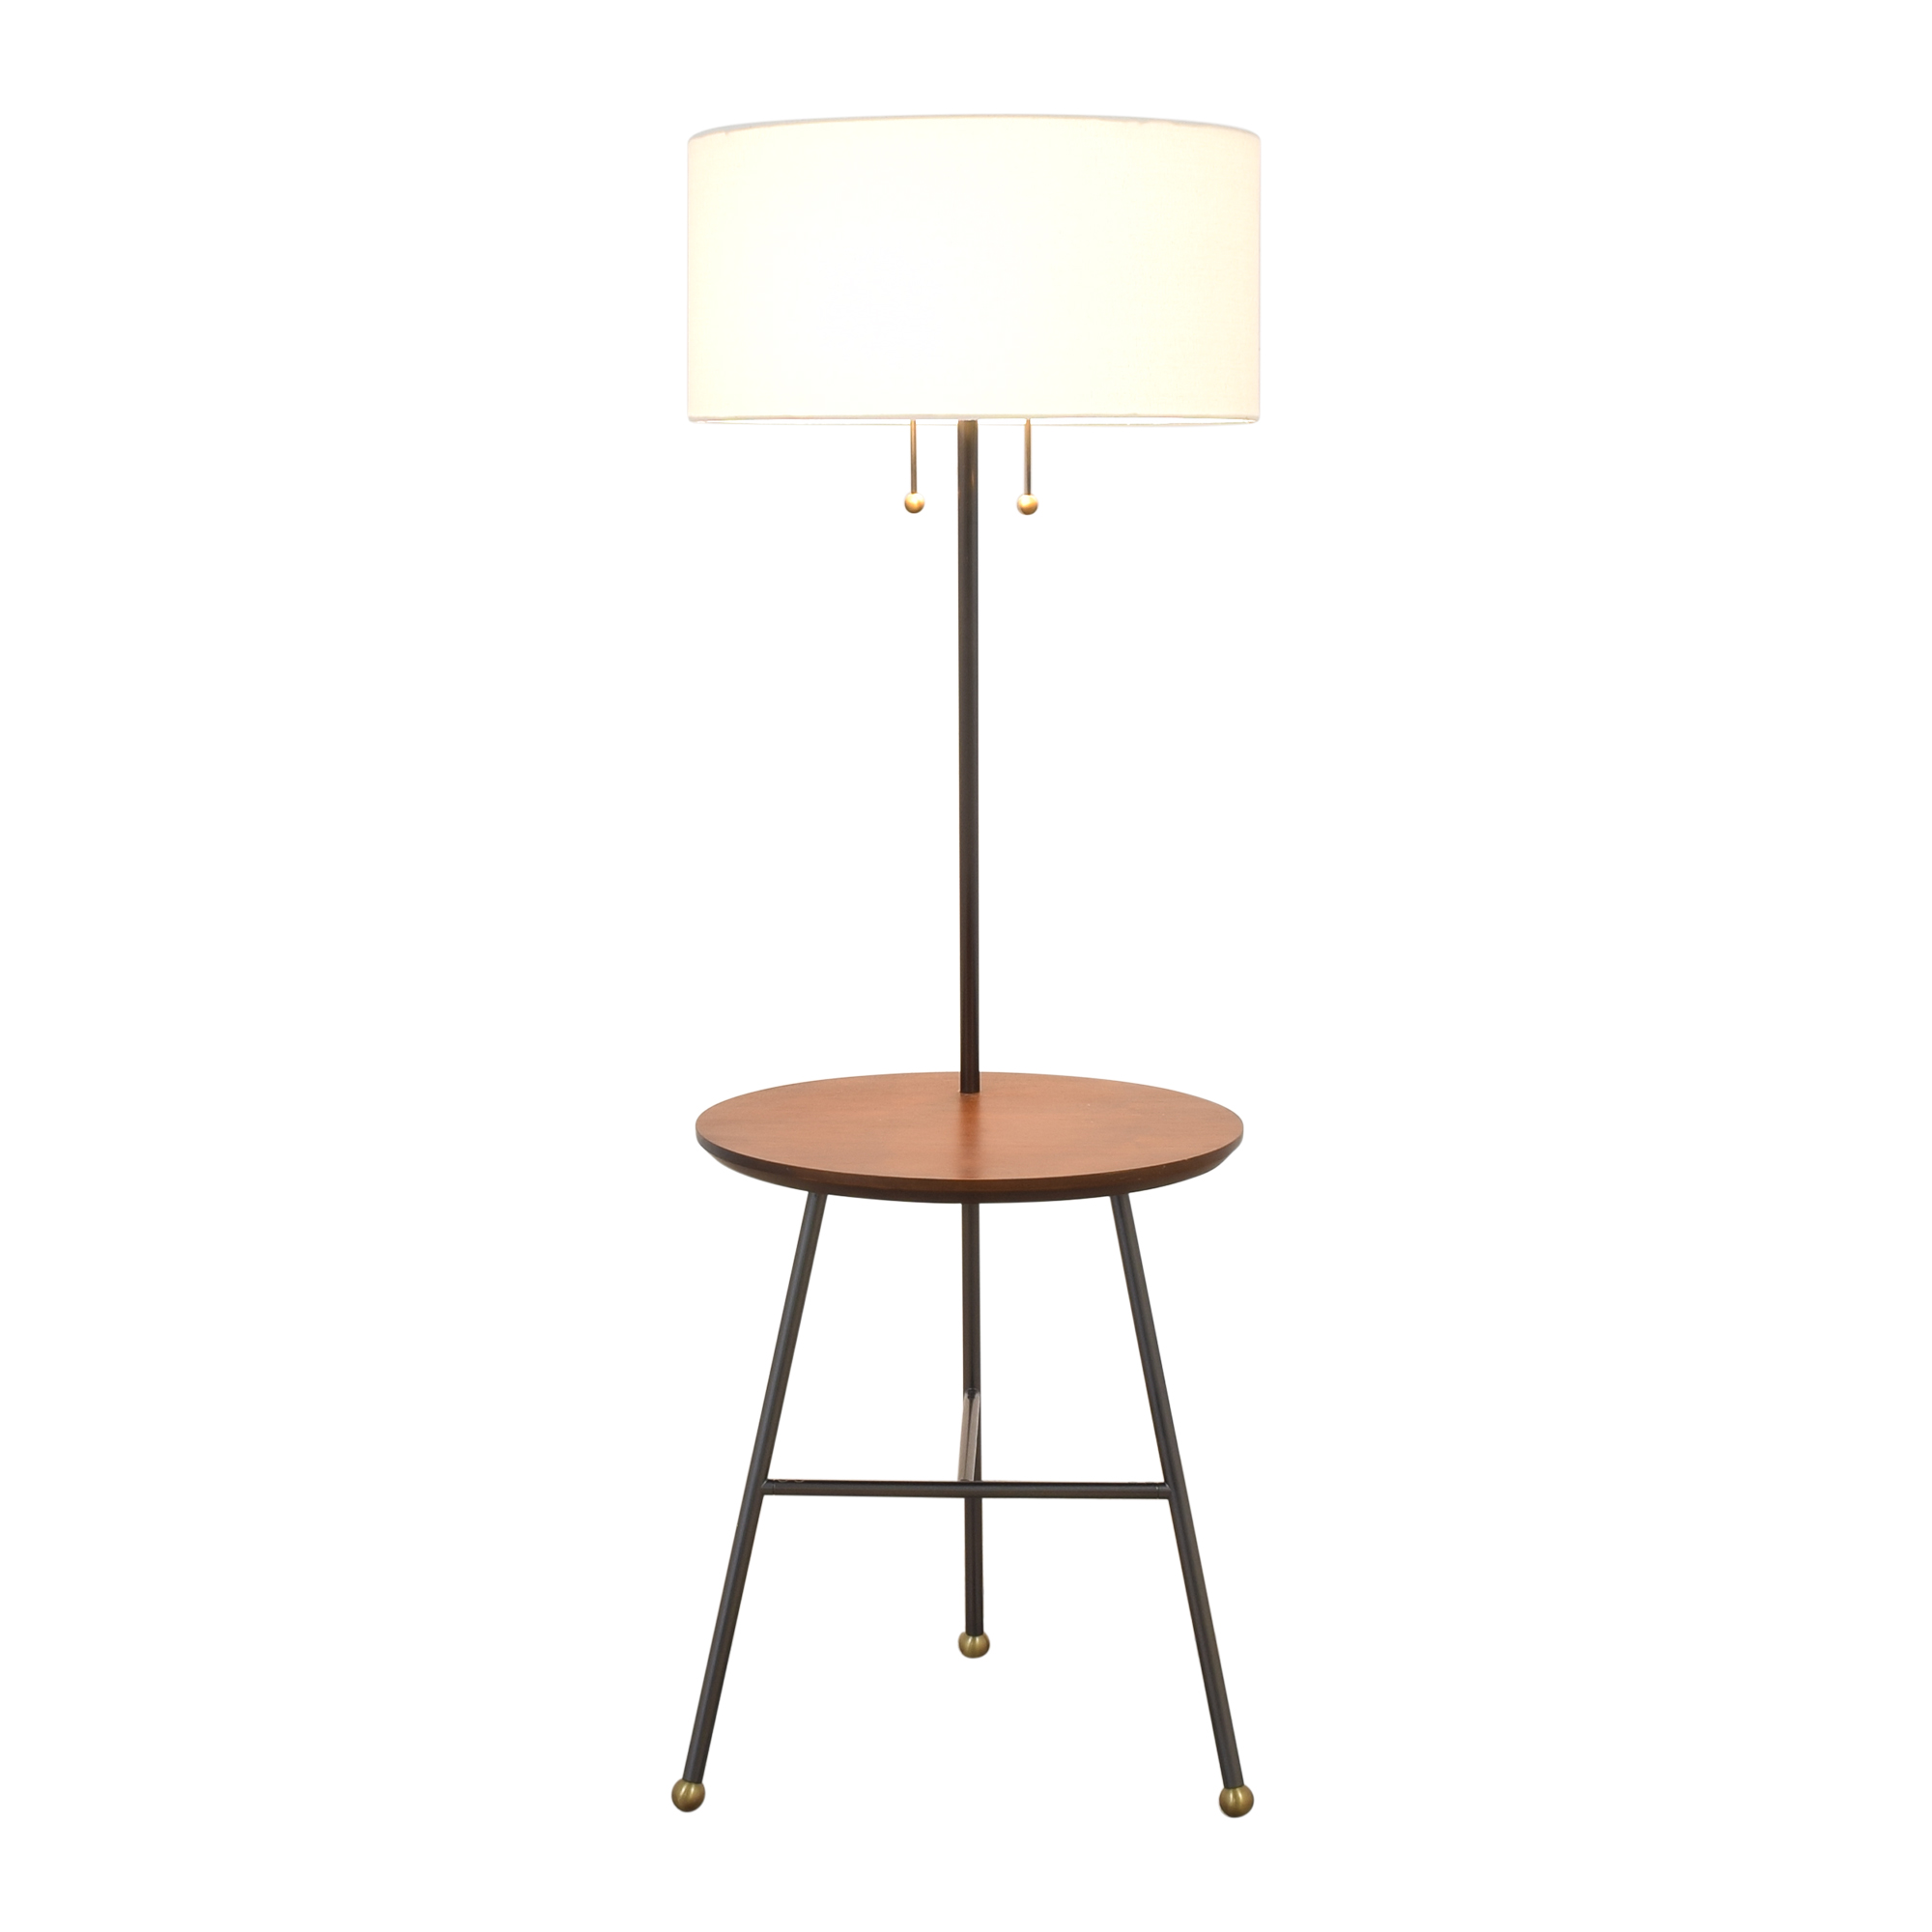 West Elm Duo Side Table Lamp / Decor